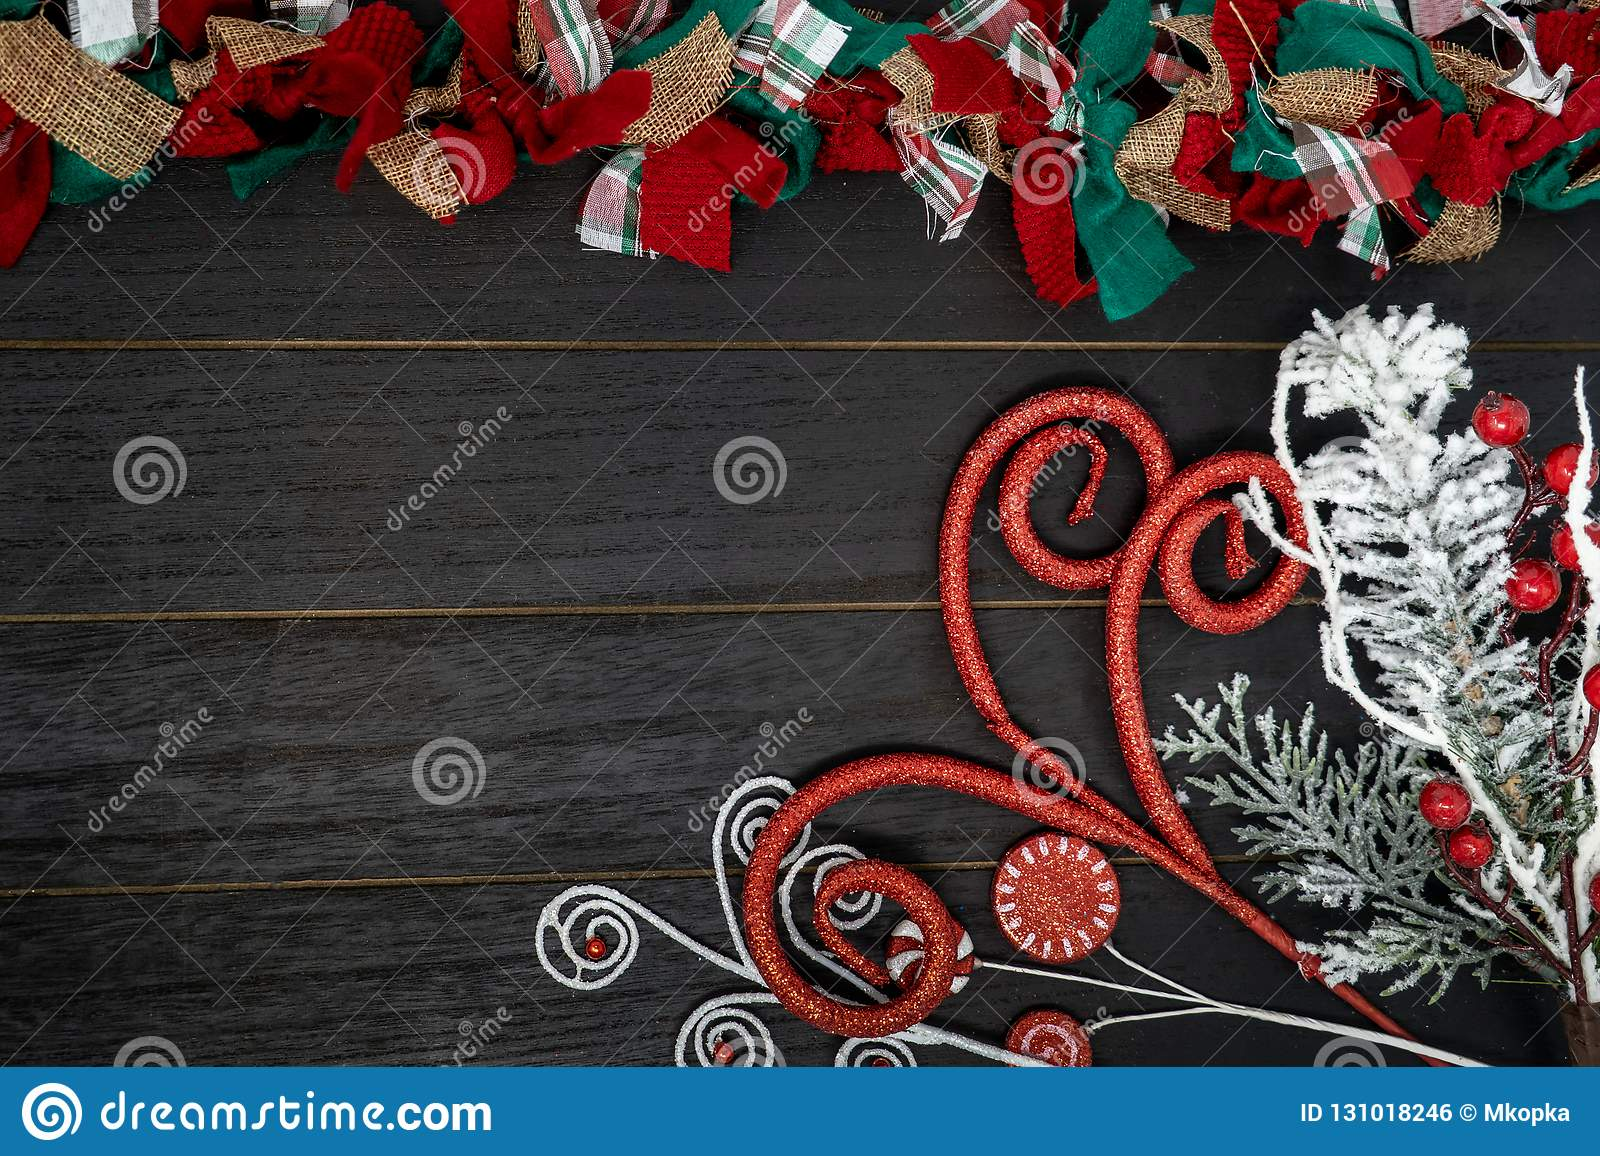 Festive Christmas Red Green And White Rag Fabric Garland Over Black Wood Backgro Stock Photo Image Of Merry Backdrop 131018246